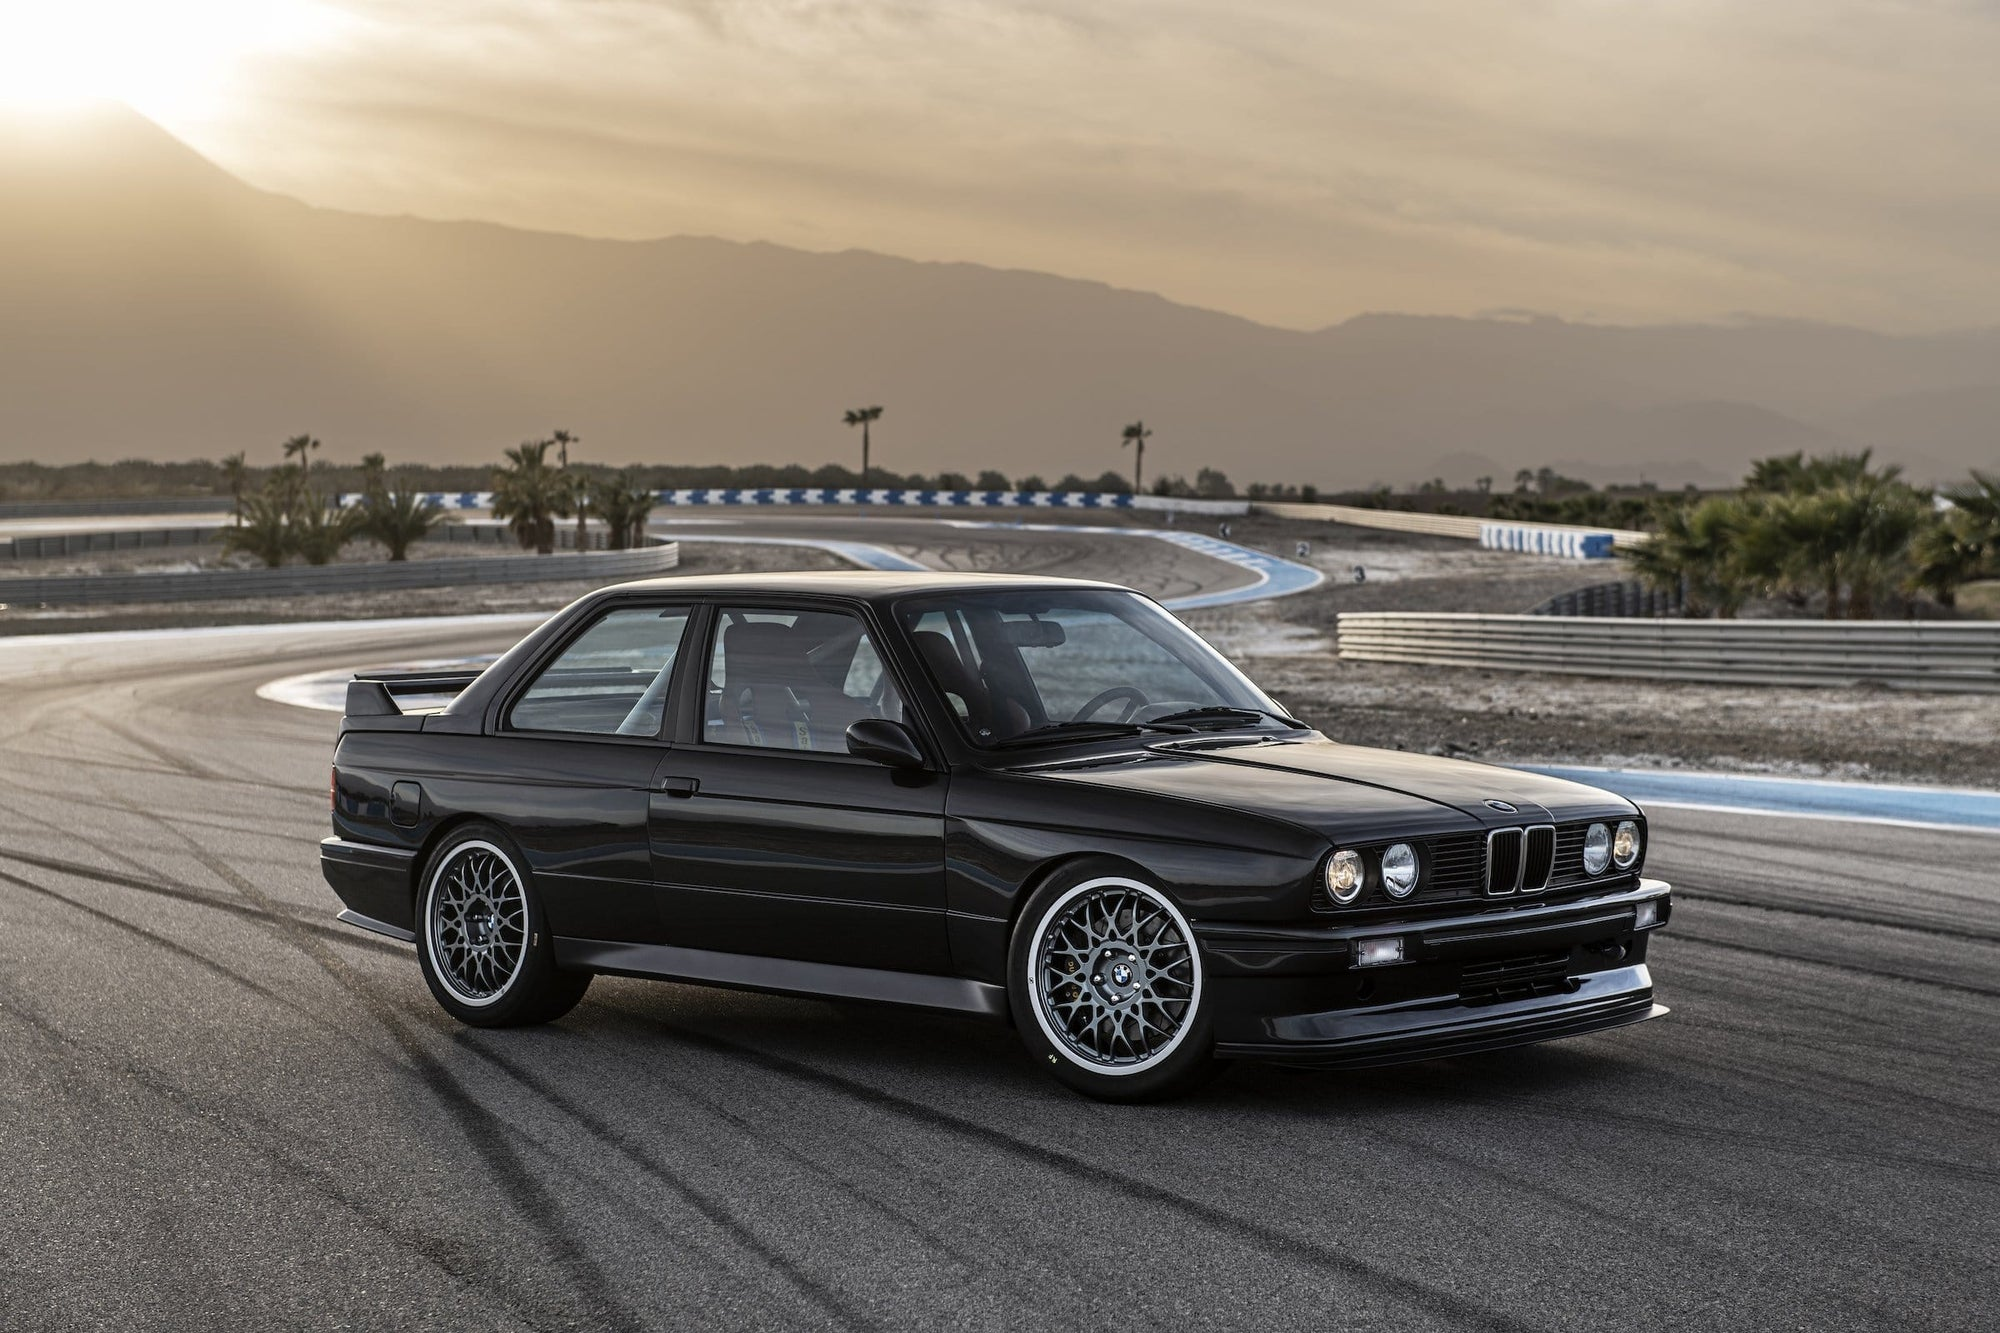 BMW E30 M3 Redux - A Very FRAHM Project